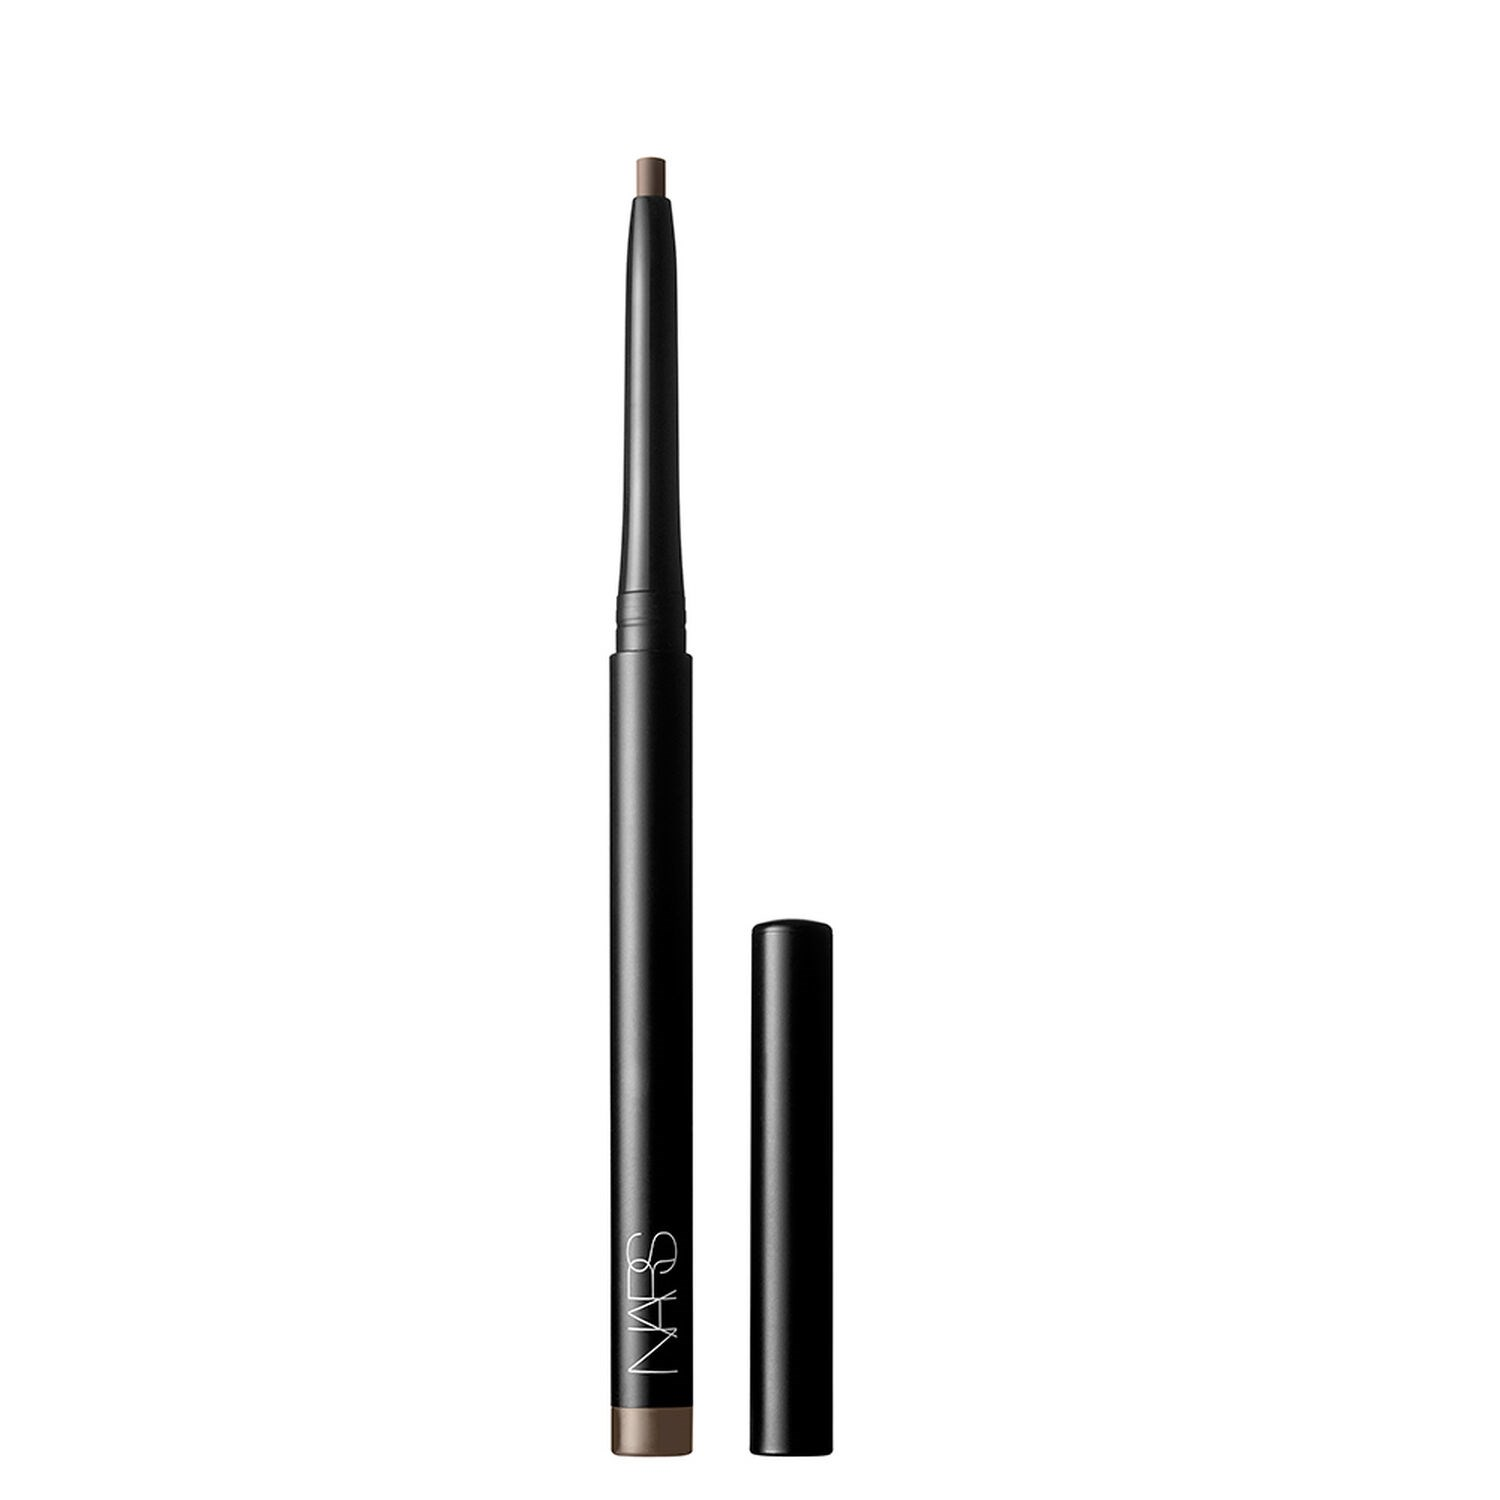 BROW PERFECTOR 1